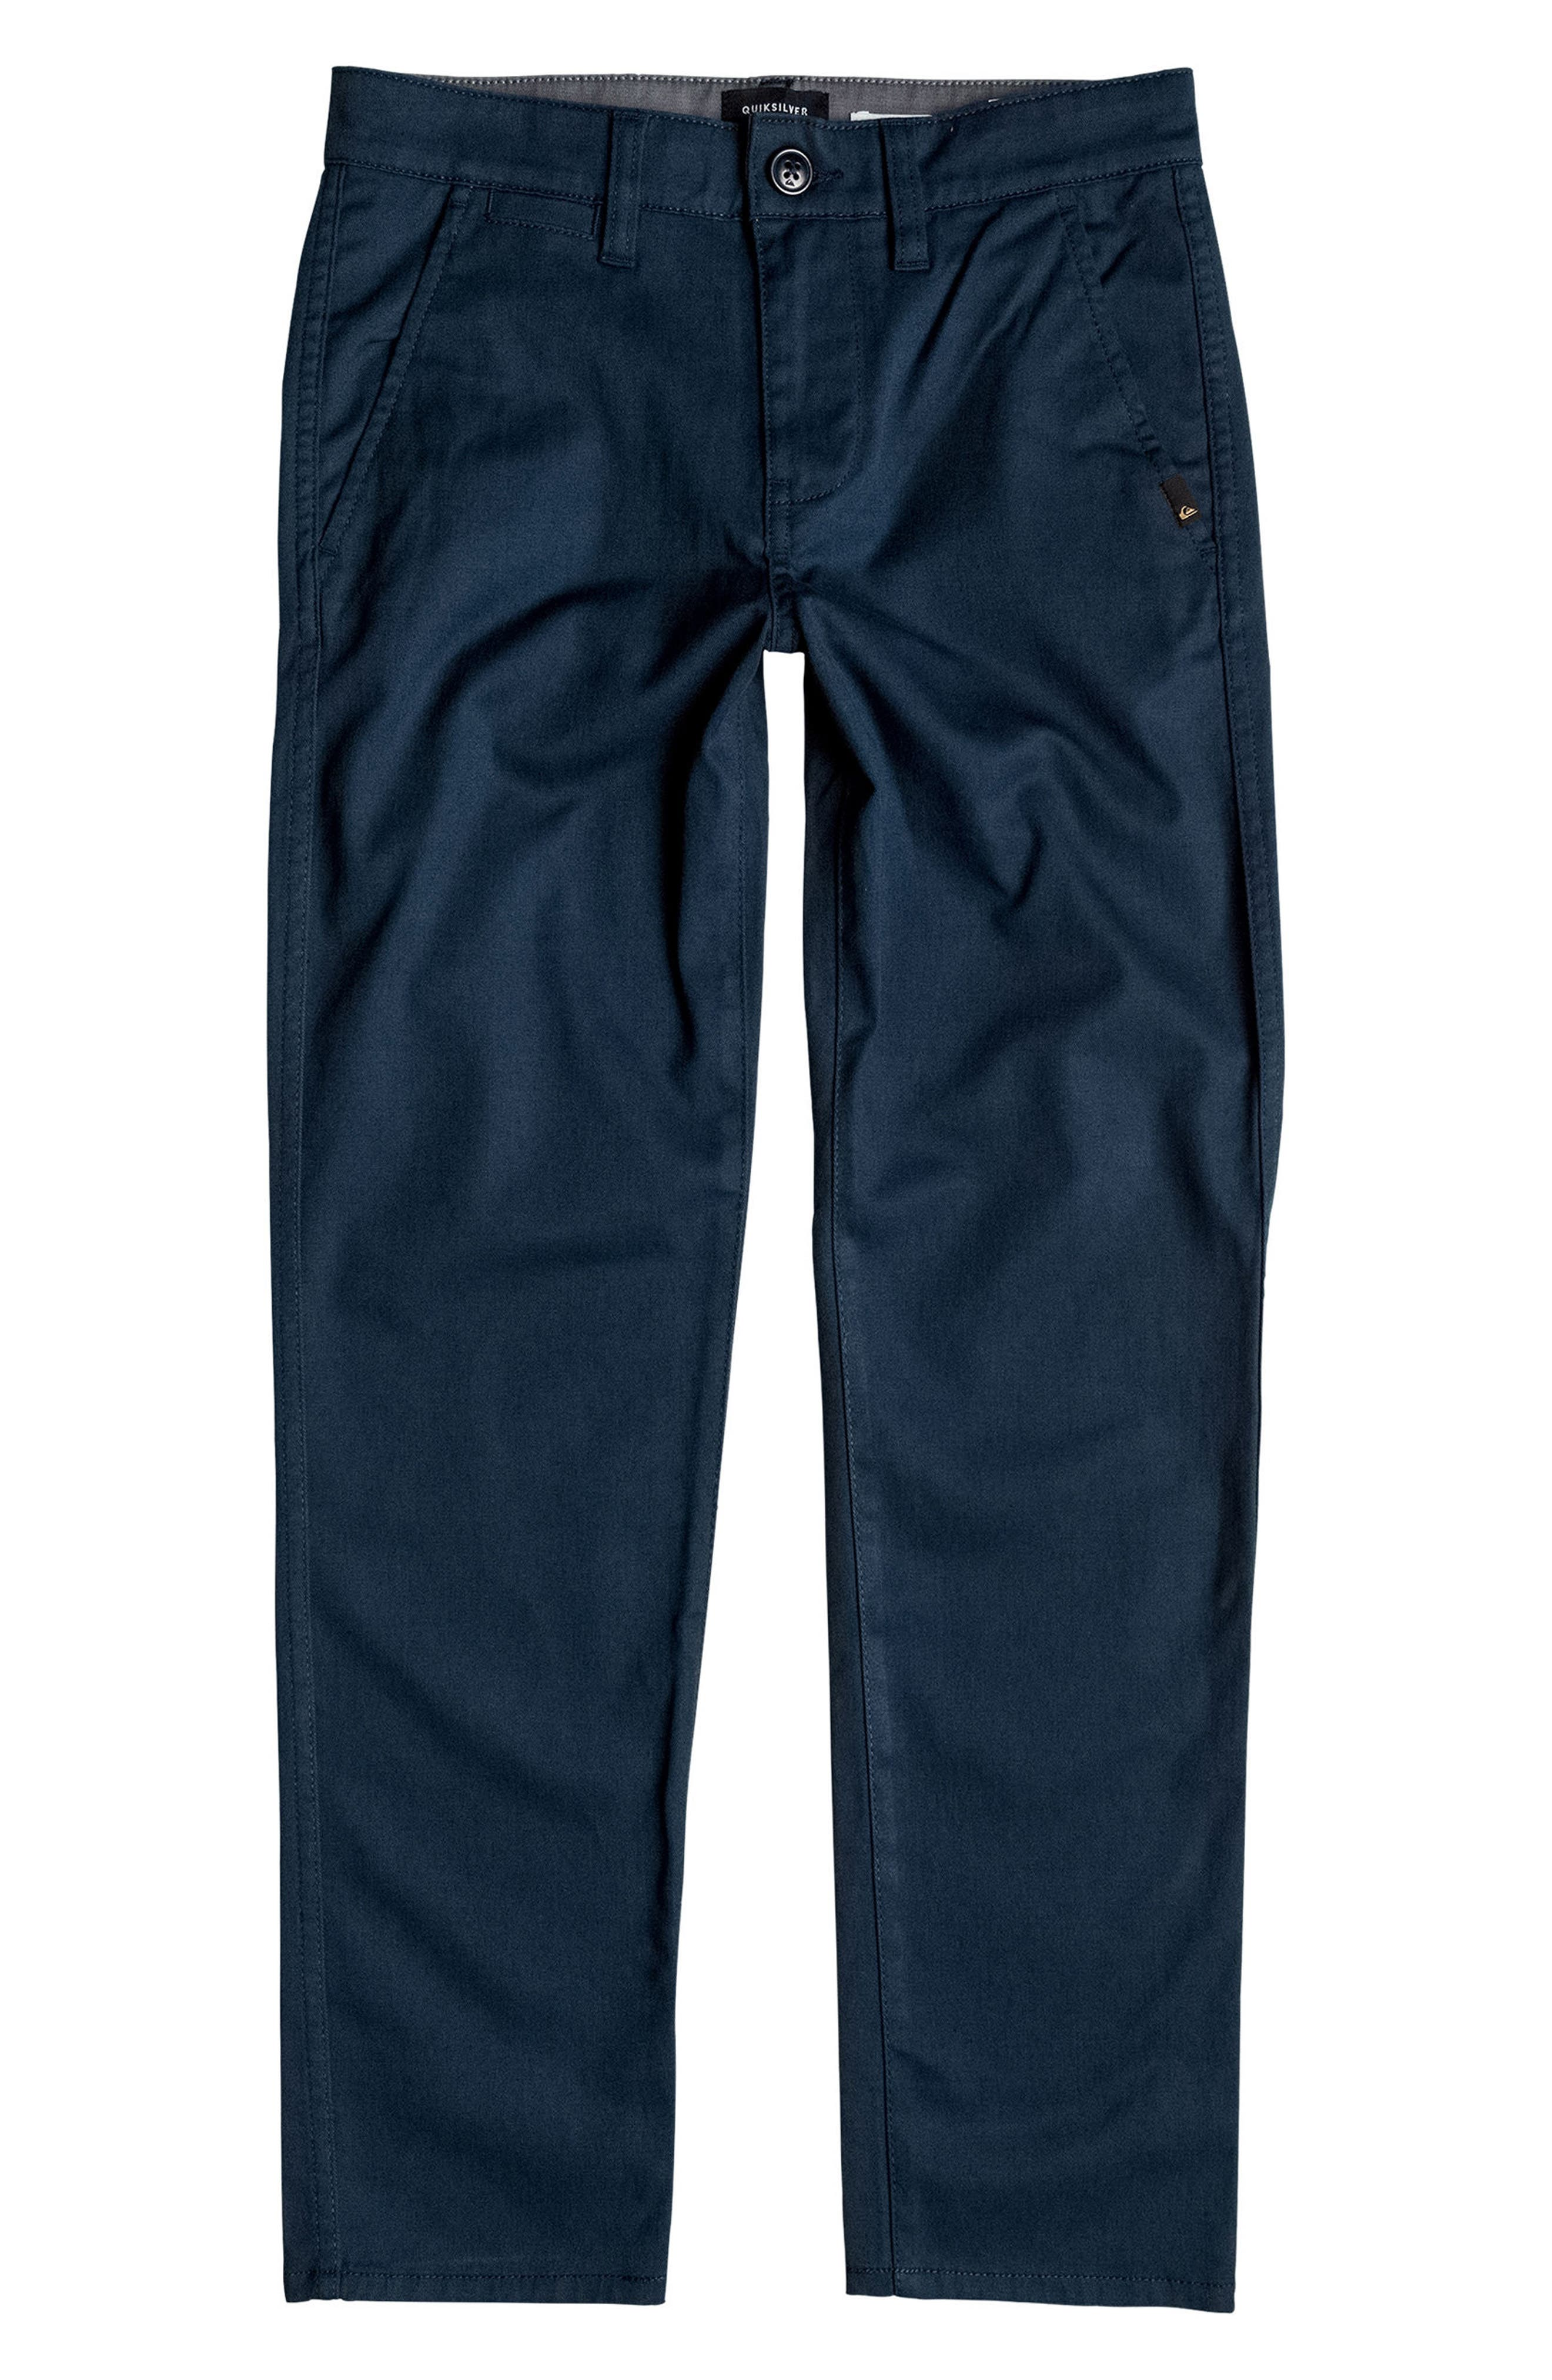 Quiksilver Regular Fit Everyday Union Pants (Big Boys)